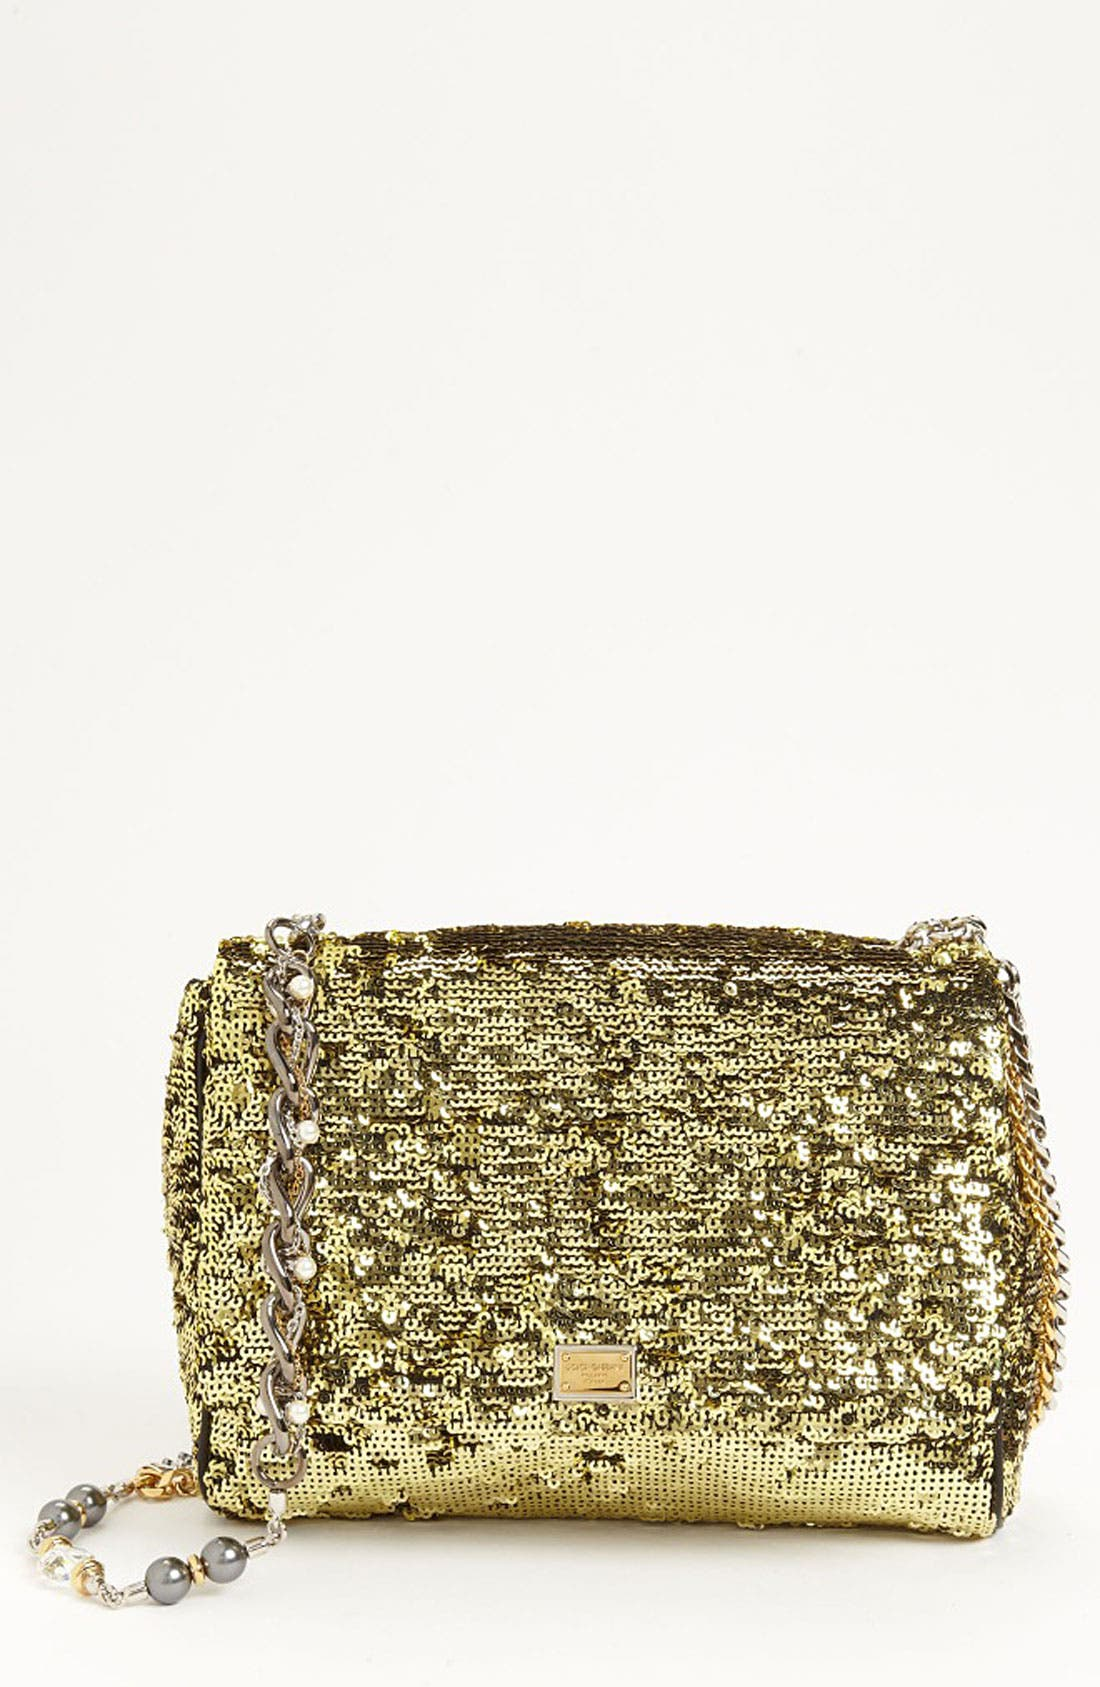 Alternate Image 1 Selected - Dolce&Gabbana 'Miss Charles' Sequin Shoulder Bag